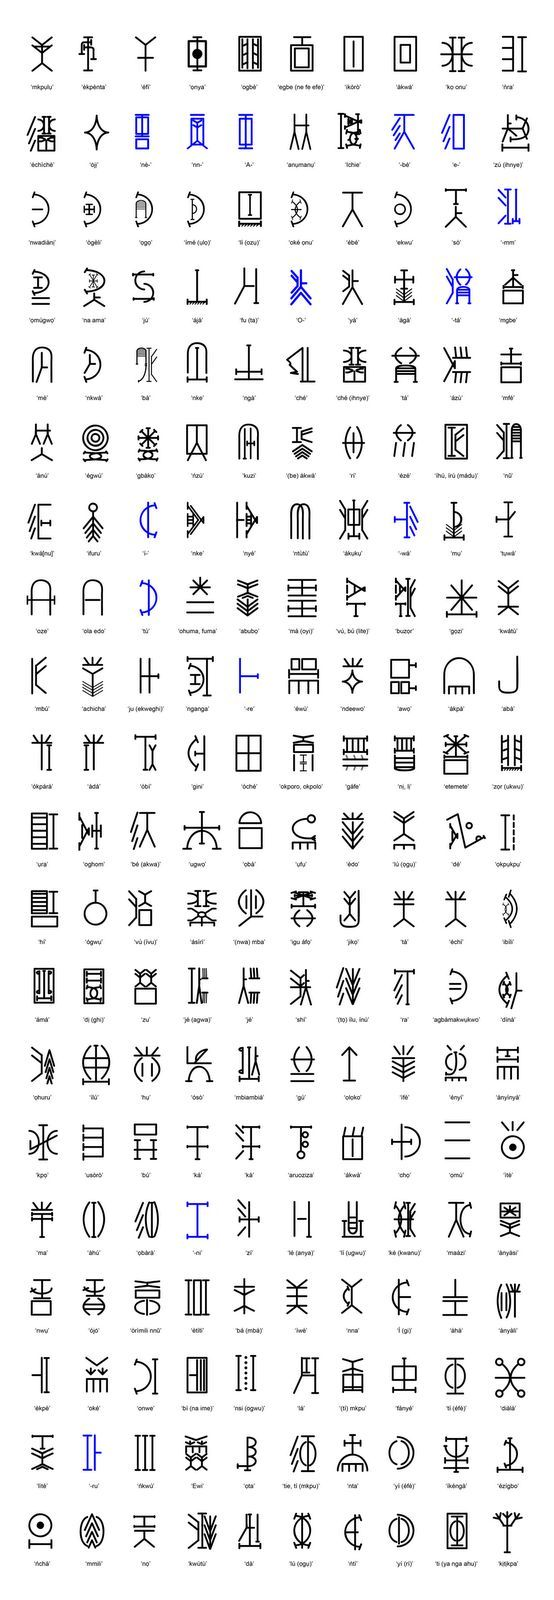 Images About Afrikan Writing Systems On Pinterest Language Ccecdfdbdbfdab Afrikan Writing Systems